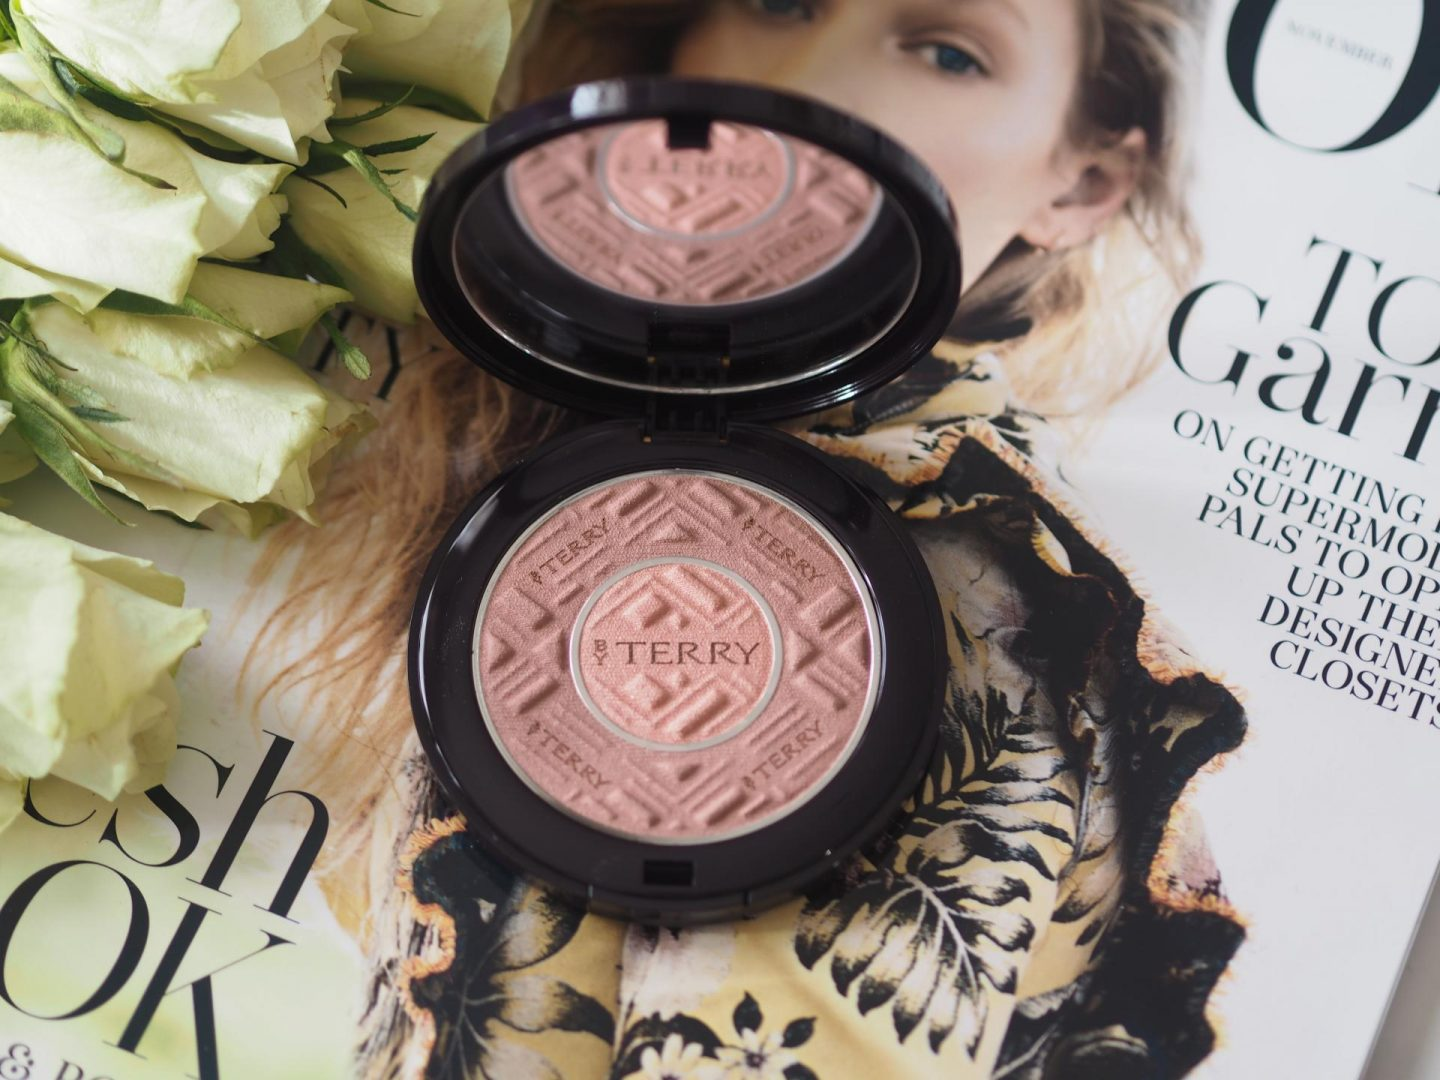 Luxe Products to Get Your Glow Back - Product: By Terry Compact Expert Hybrid Setting Veil (Colour 5. Amber Light)